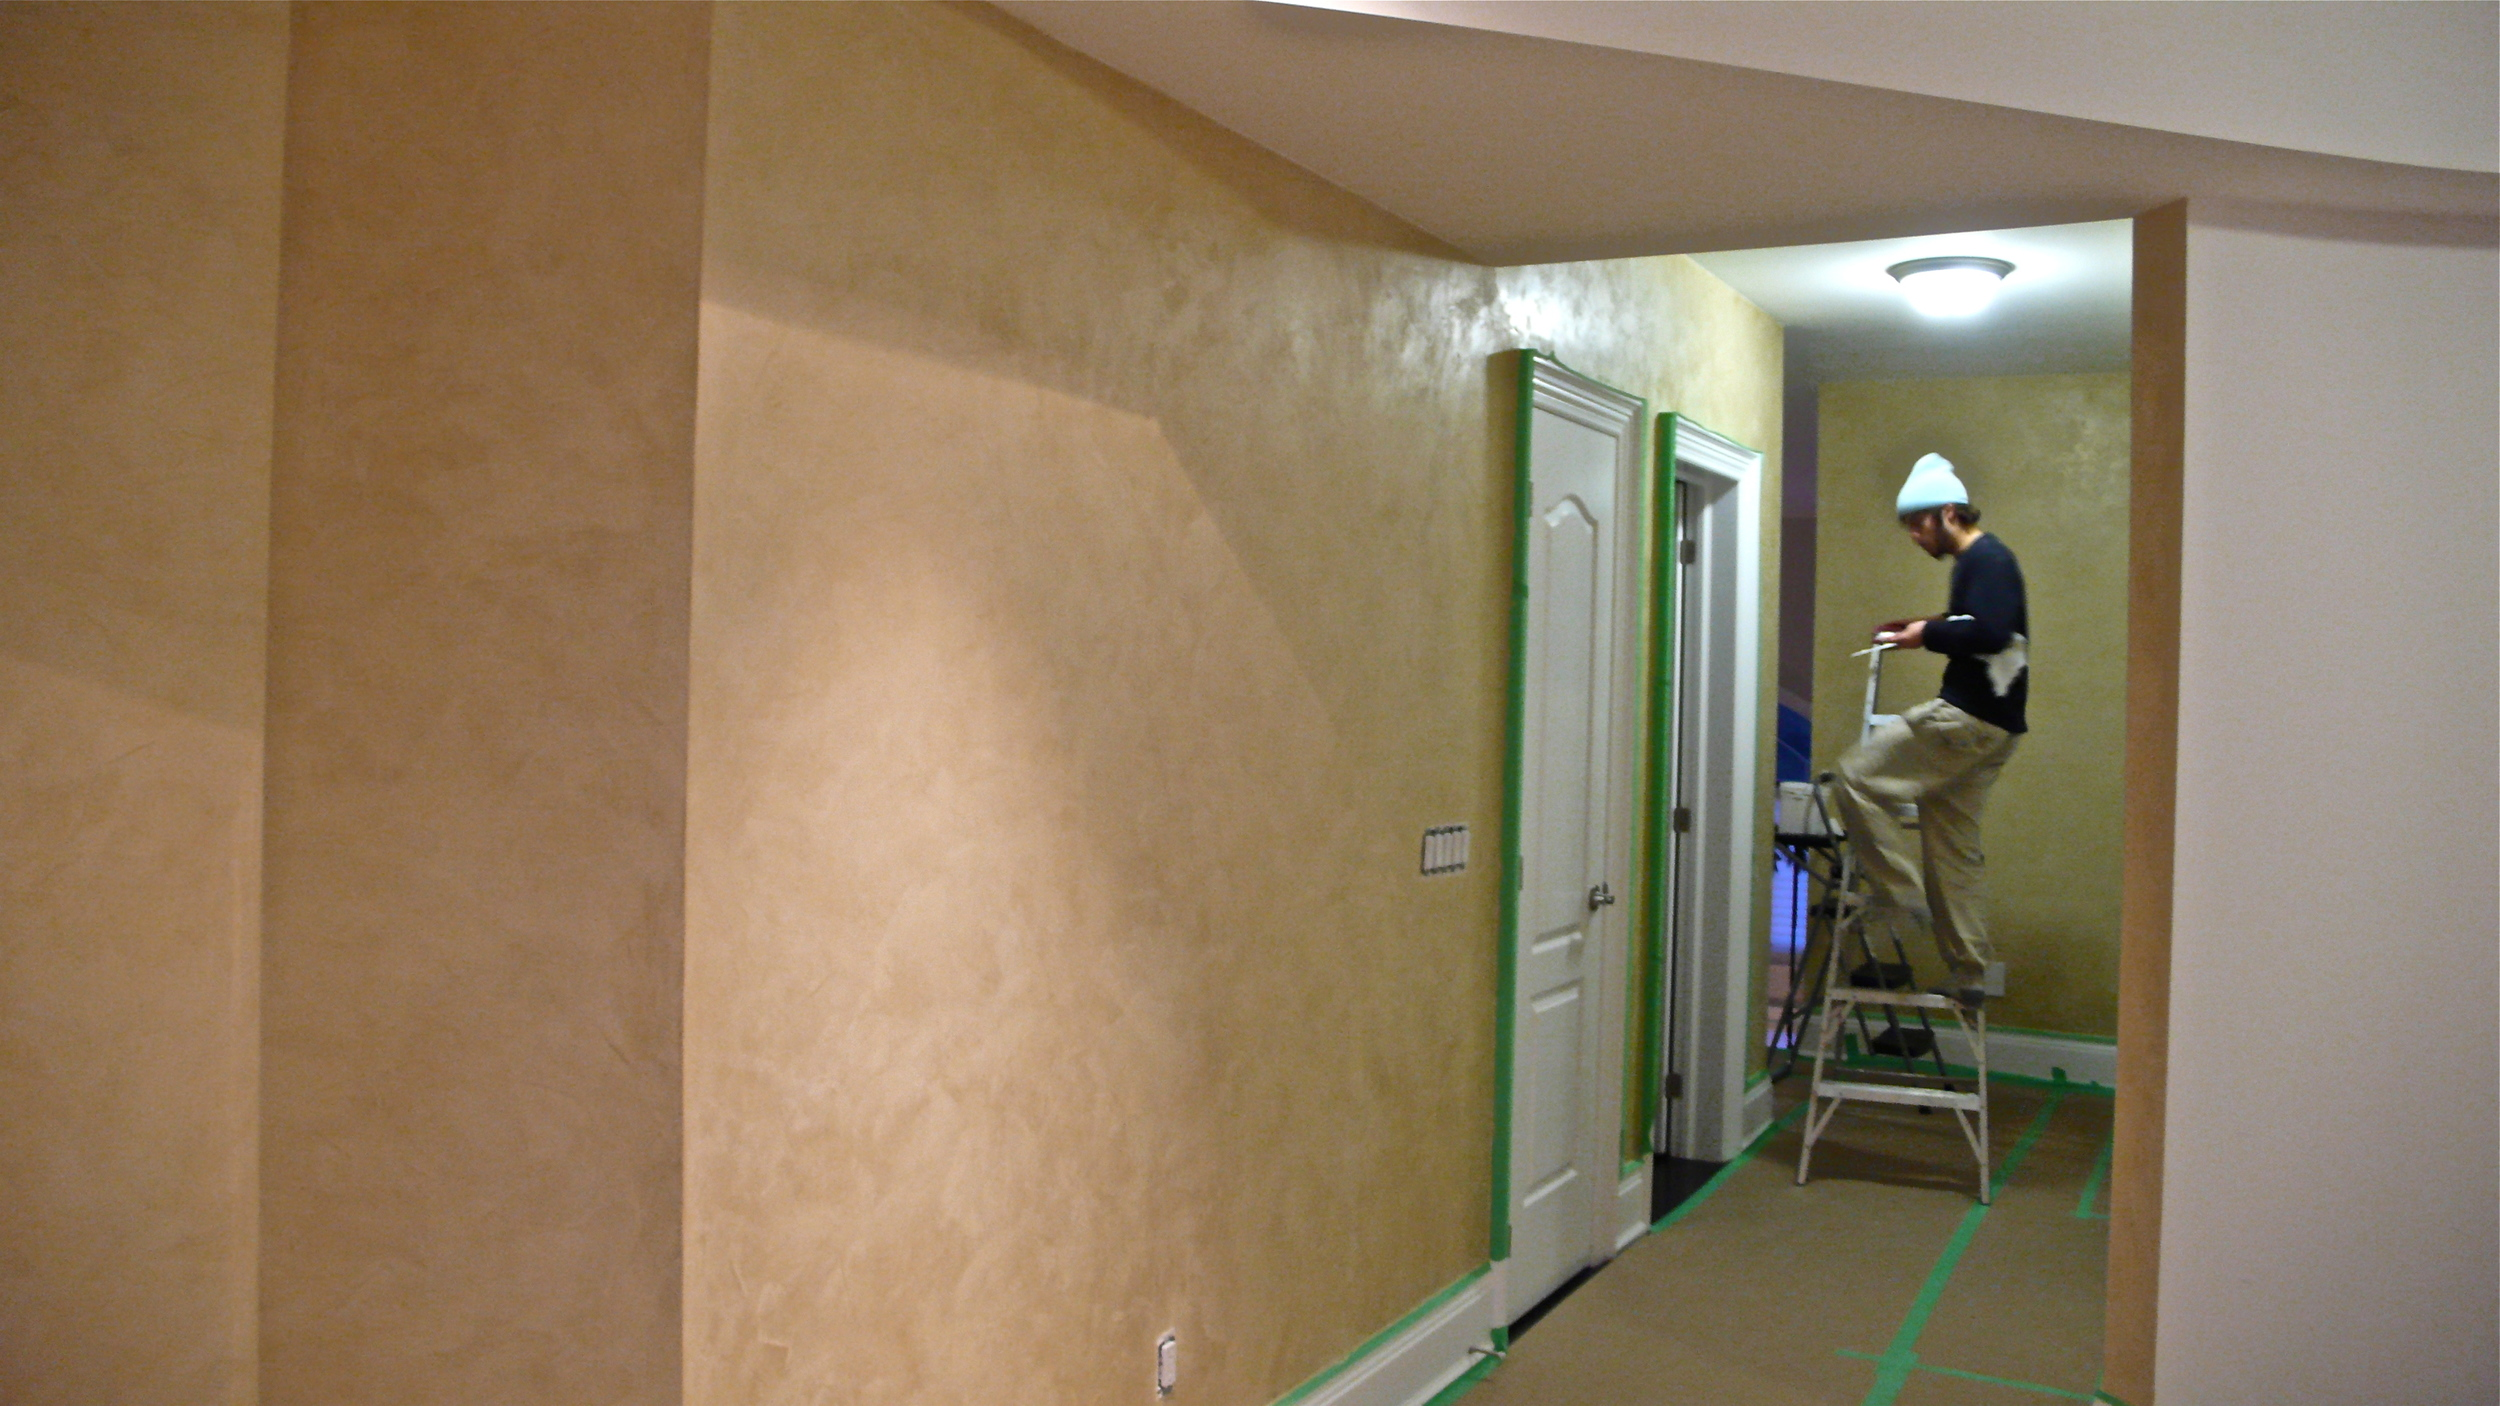 When the plaster has dried, we burnish it and apply a protective wax topcoat.